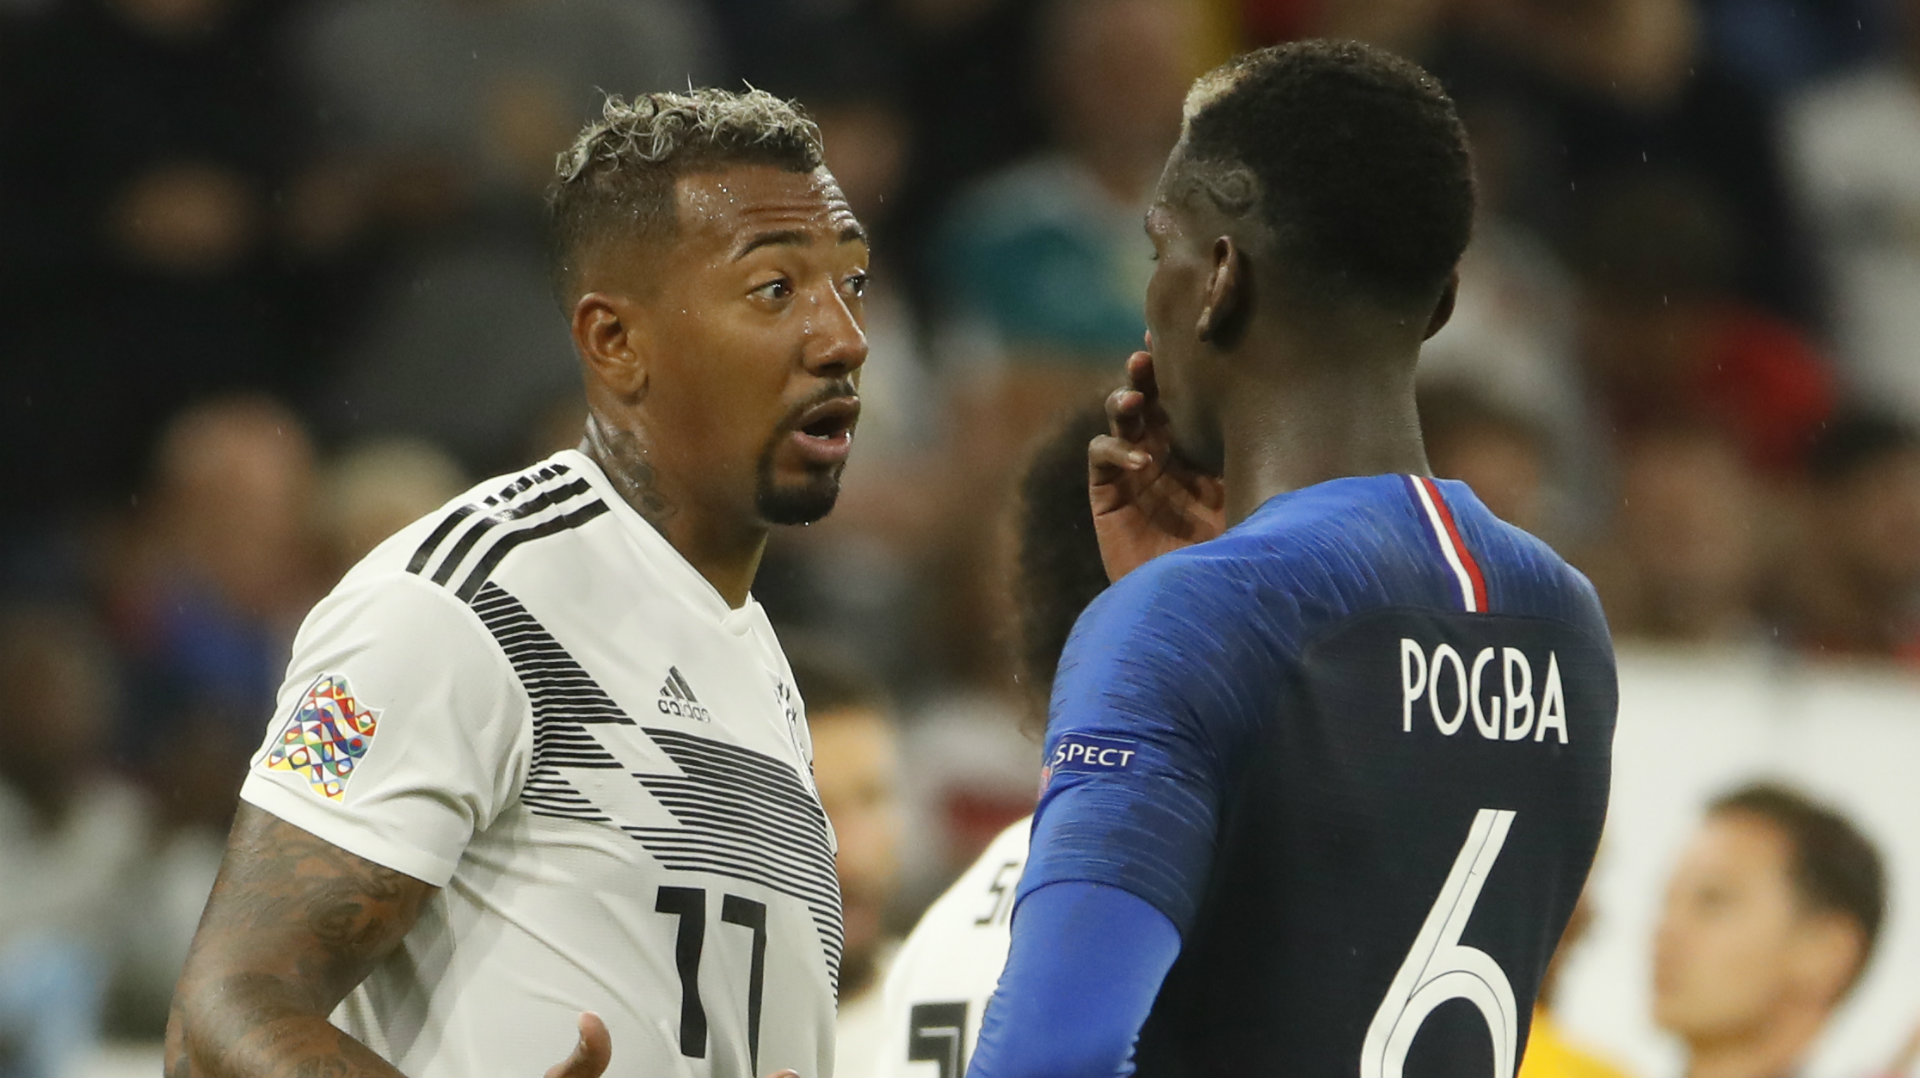 Jerome Boateng called Jose Mourinho to thank him for Man Utd interest